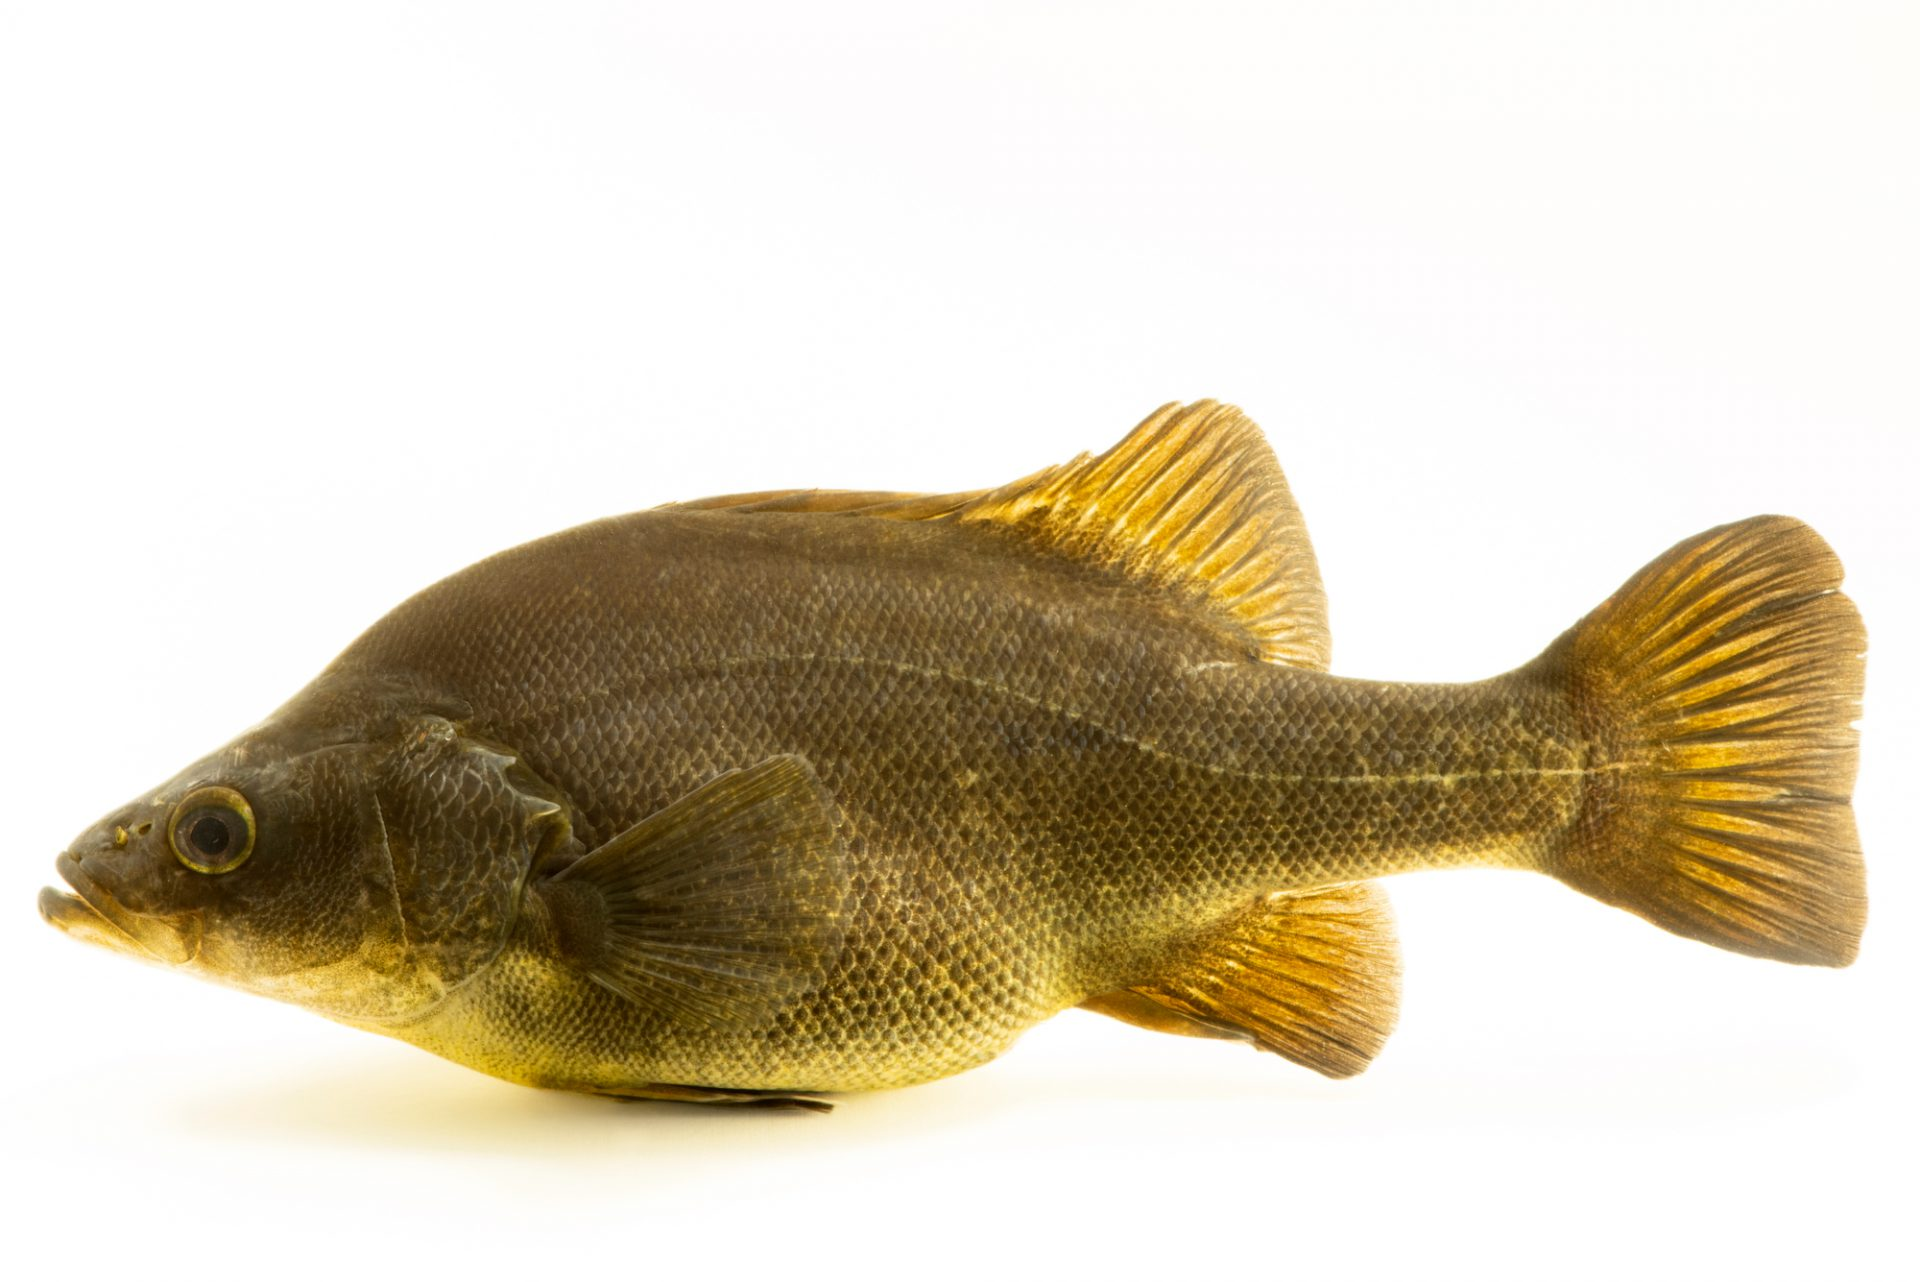 Photo: Golden perch (Macquaria ambigua) at the Freshwater Ecology and Marine Biology Dept. at Templestowe College.